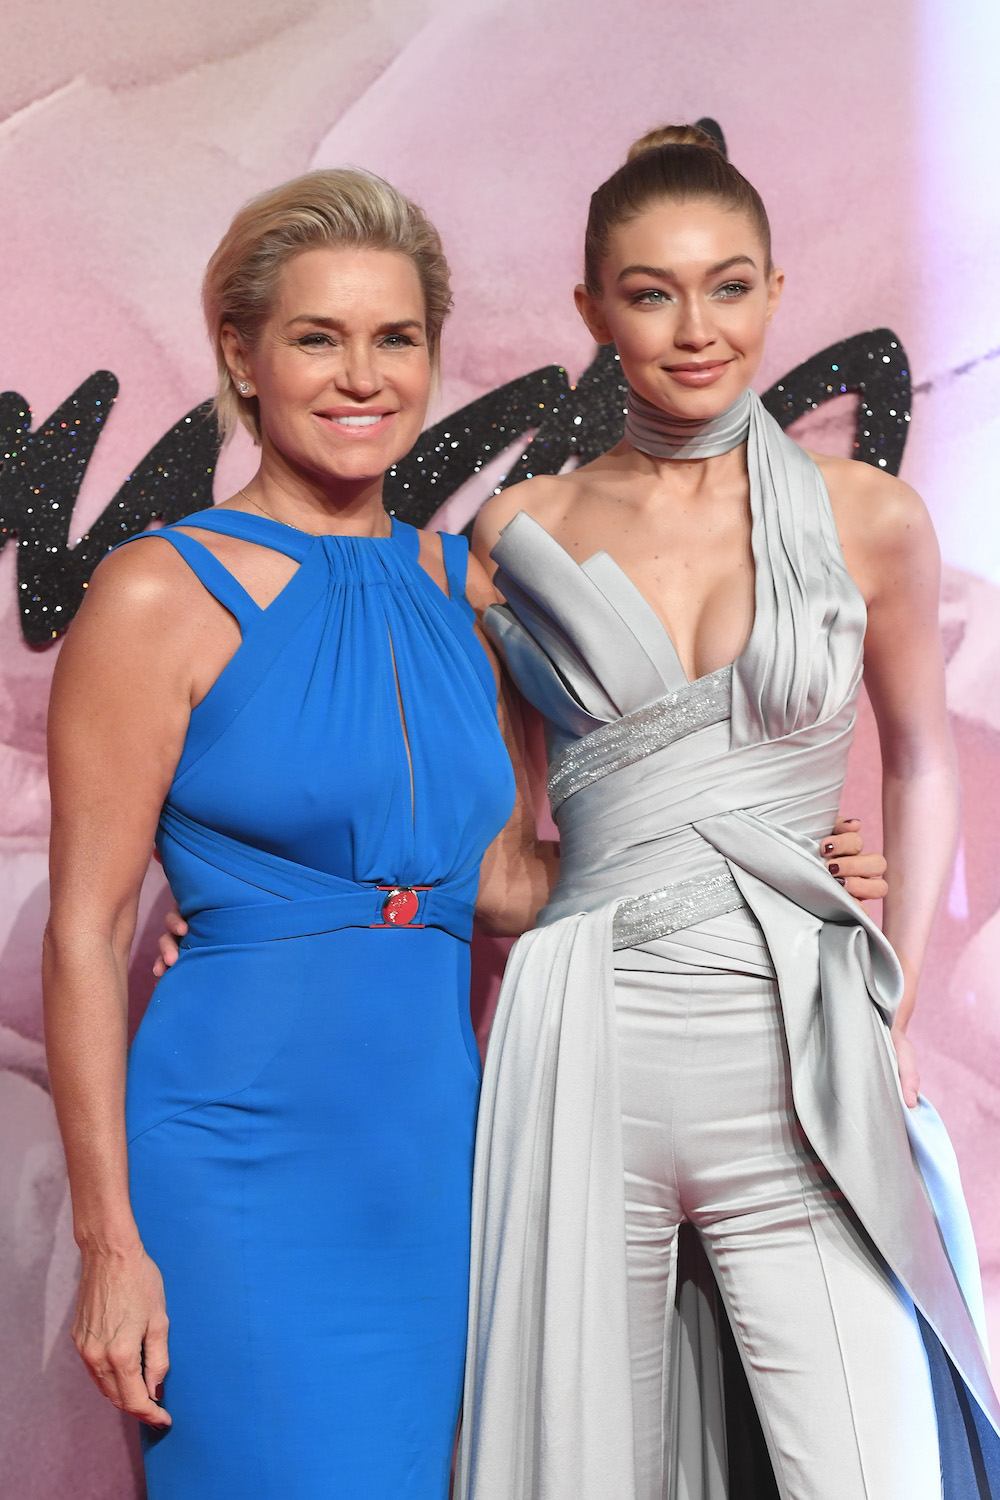 Gigi Hadid and Yolanda Hadid